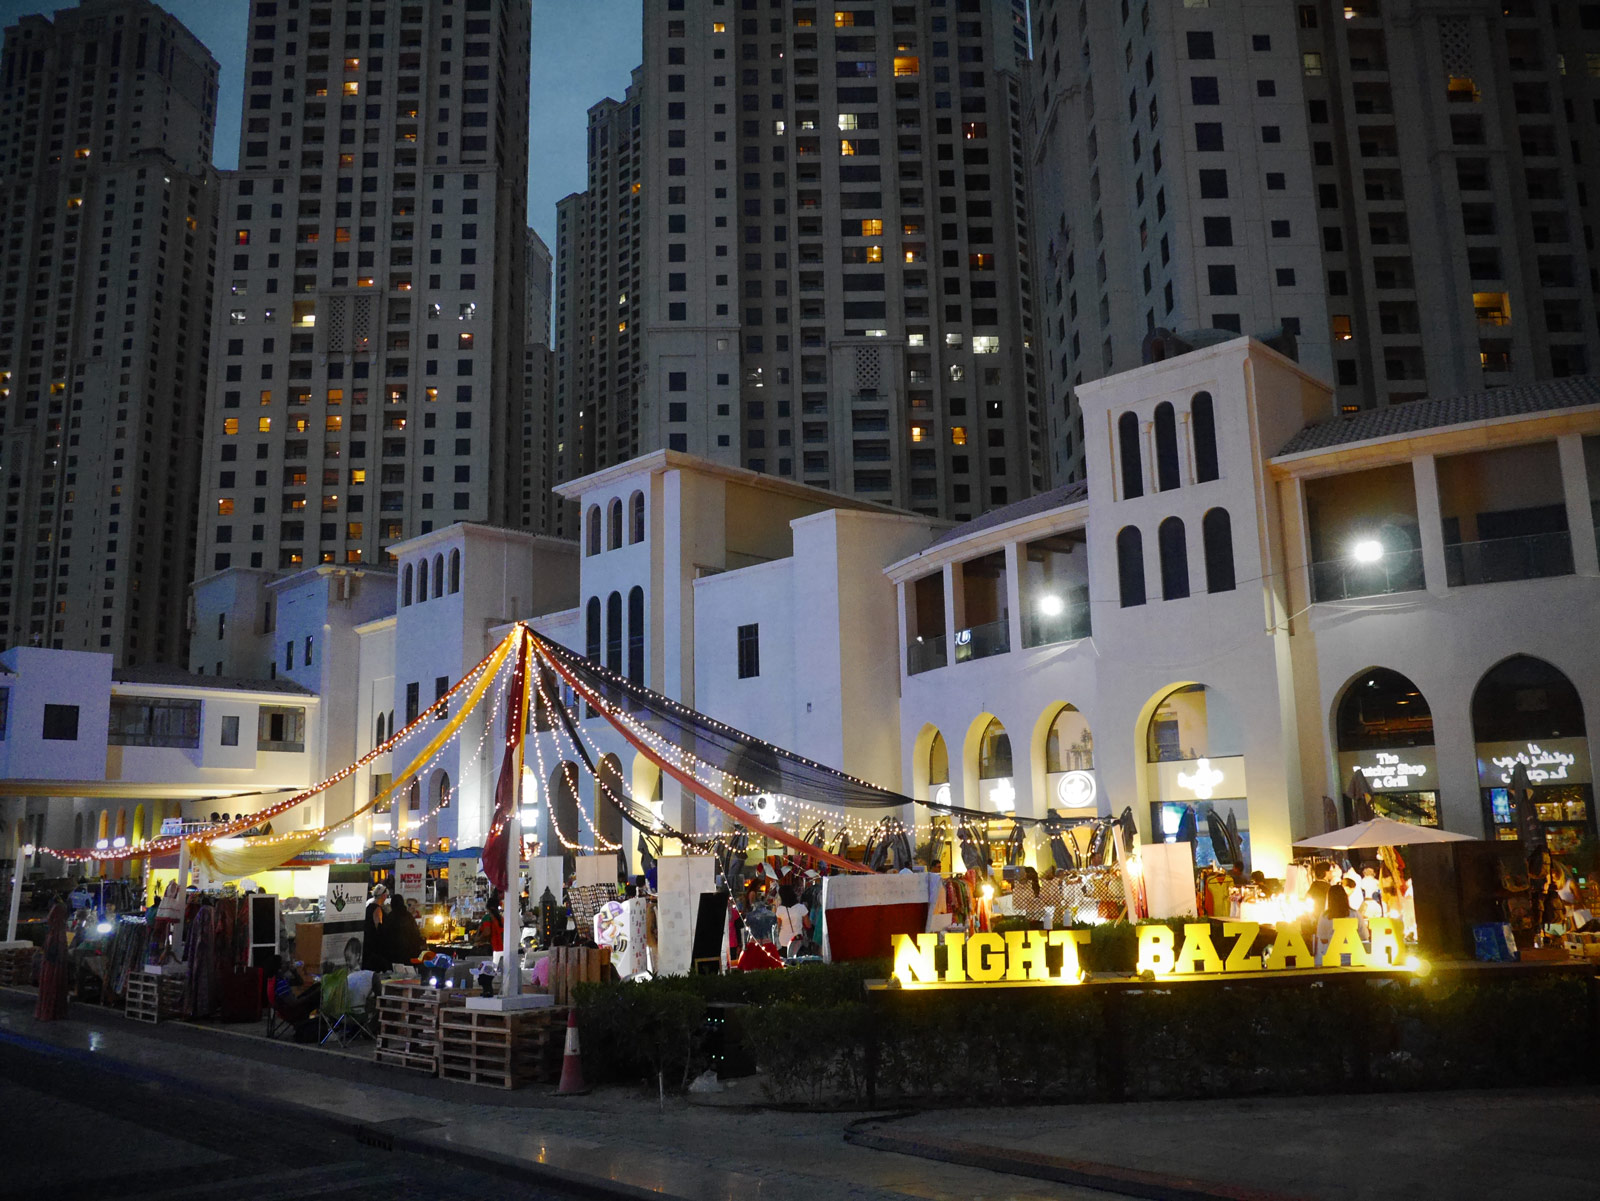 Street Nights DXB: A Colourful Night Market - Dubai, United Arab Emirates